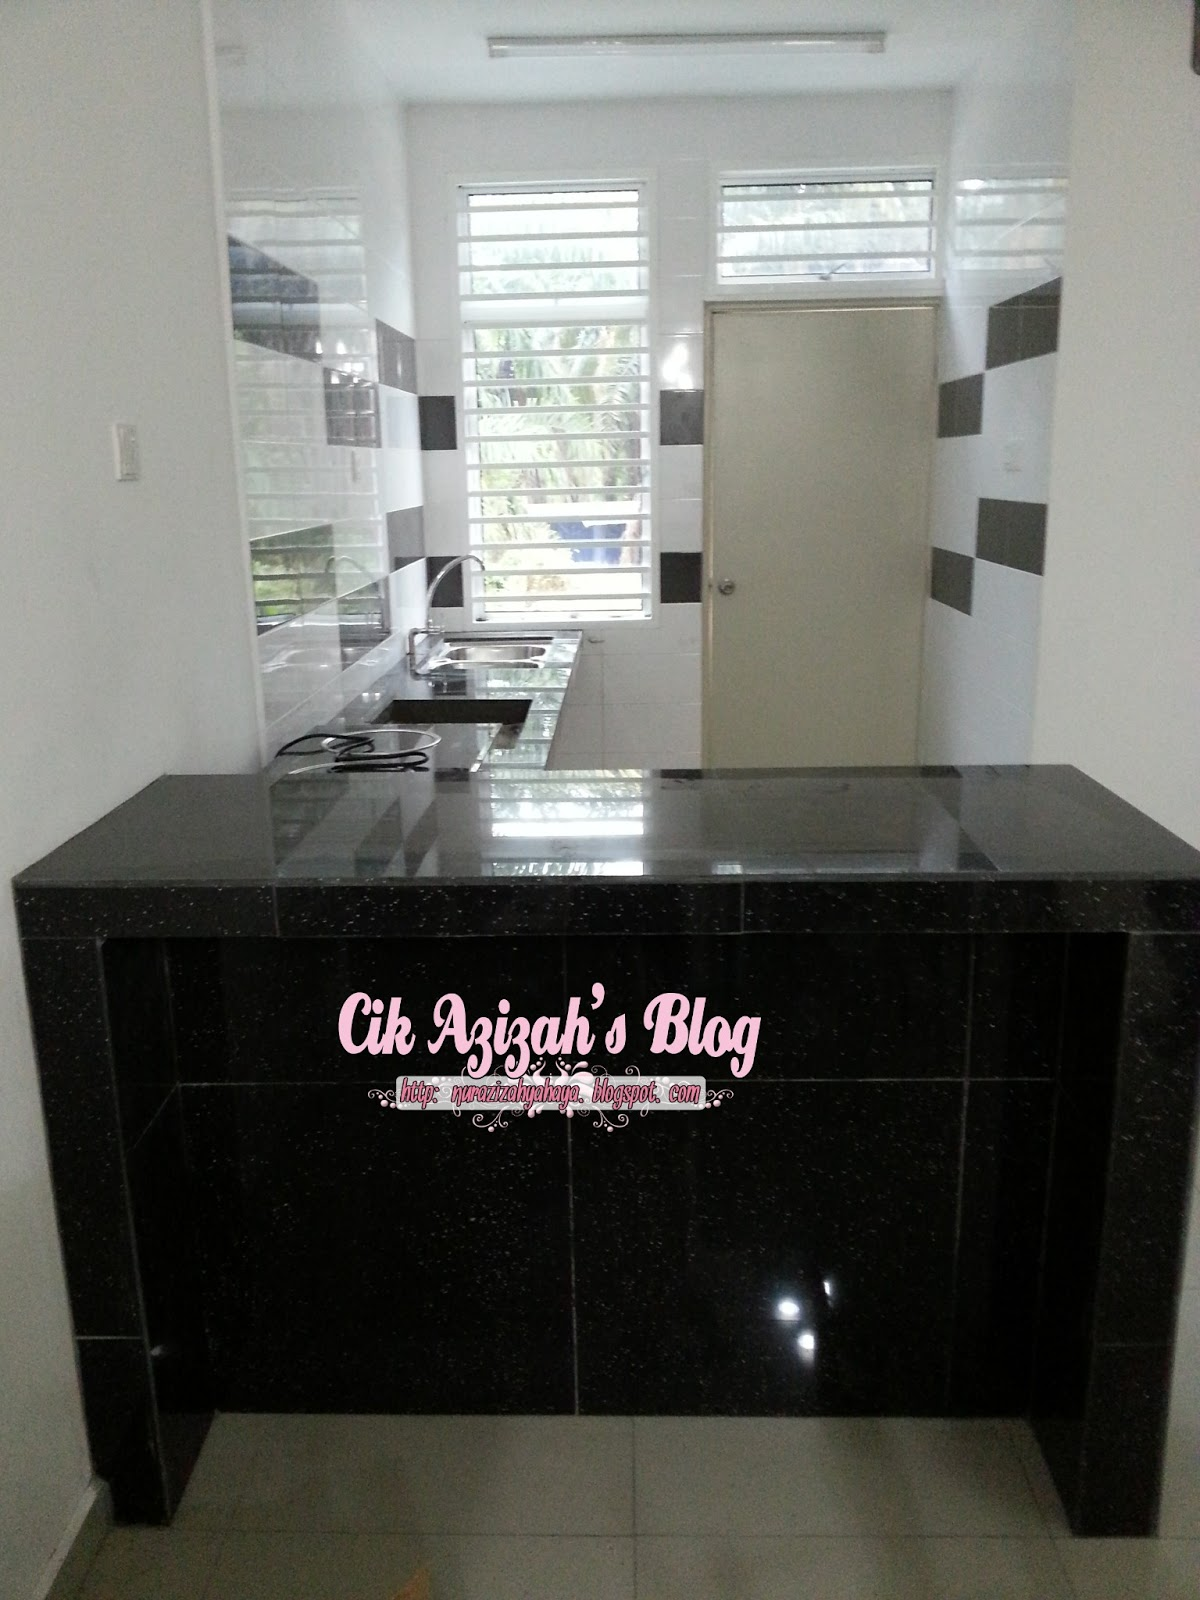 Home progress table top kitchen cabinet part 2 cik azizah for Table top kitchen cabinet